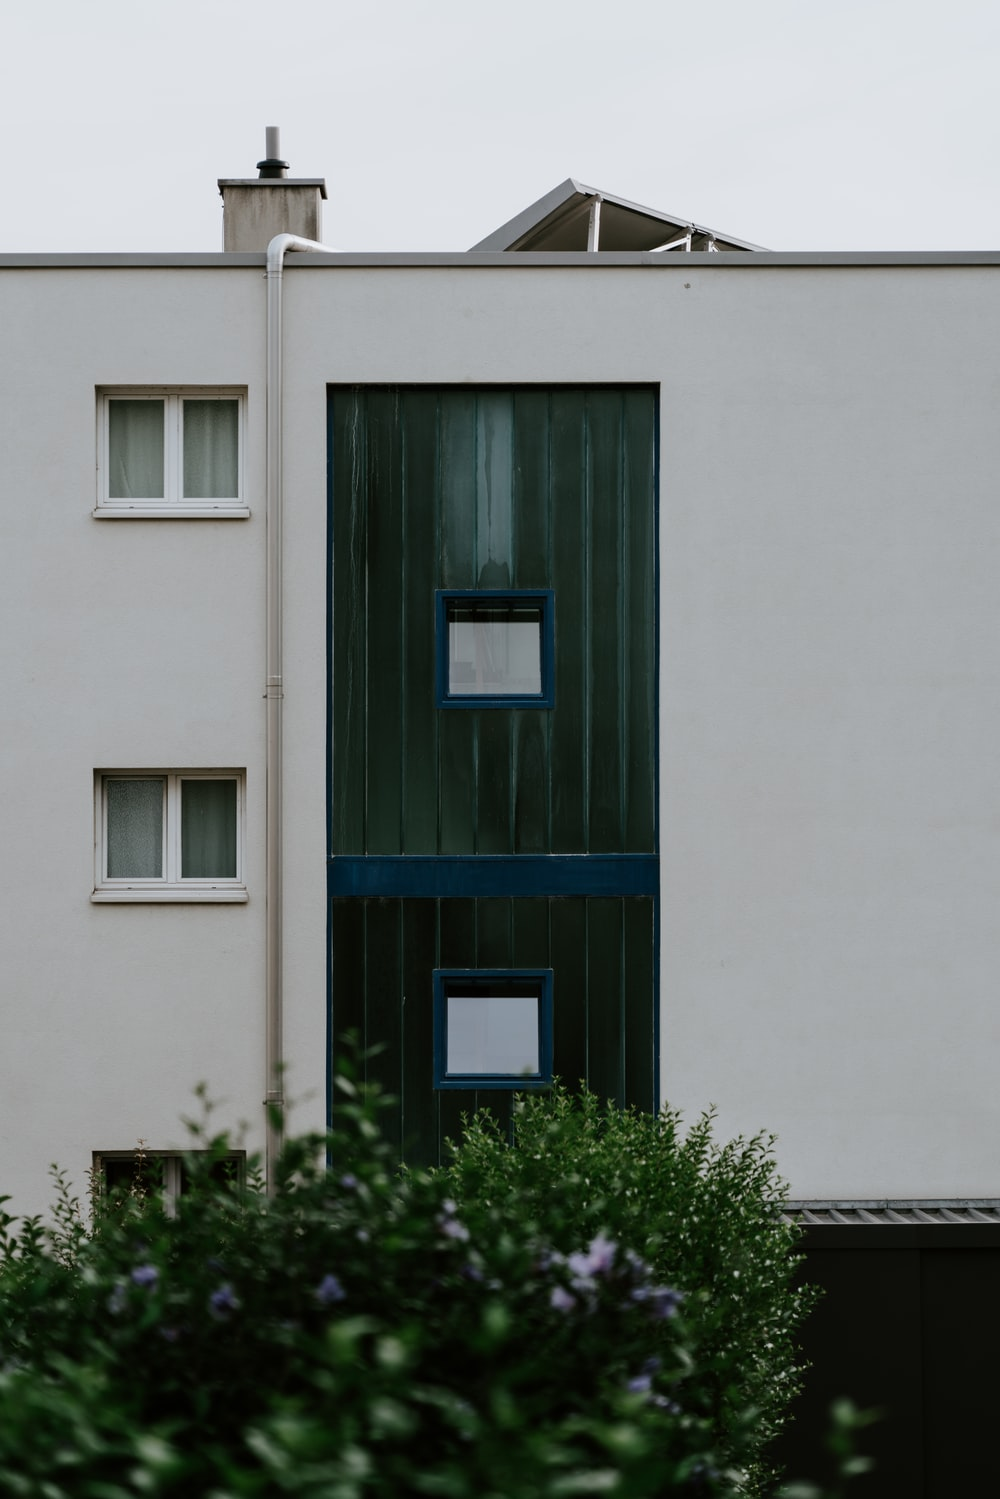 white building with windows